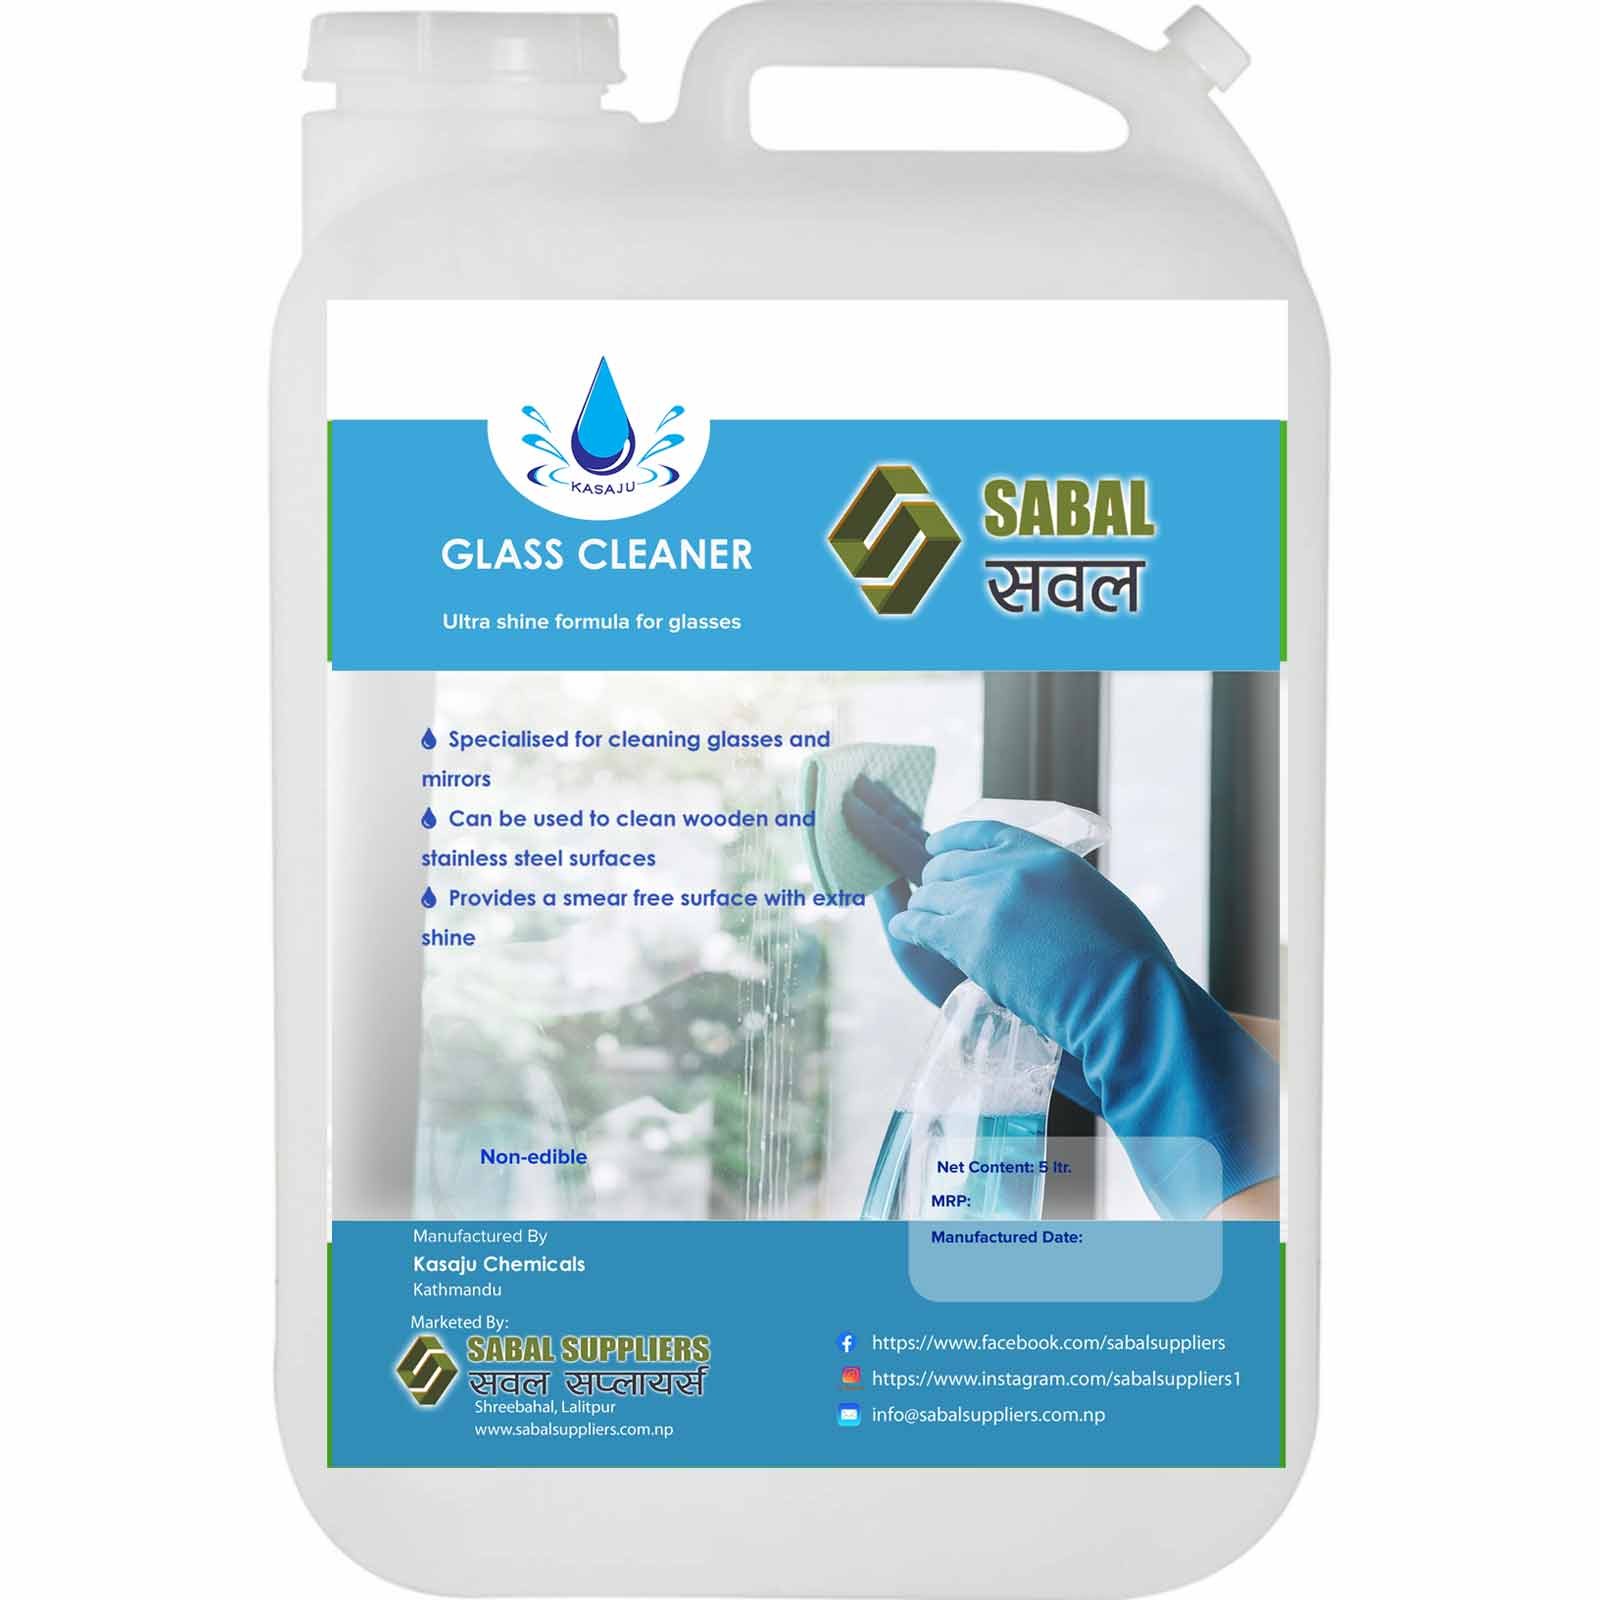 Sabal Glass Cleaner 5 ltr